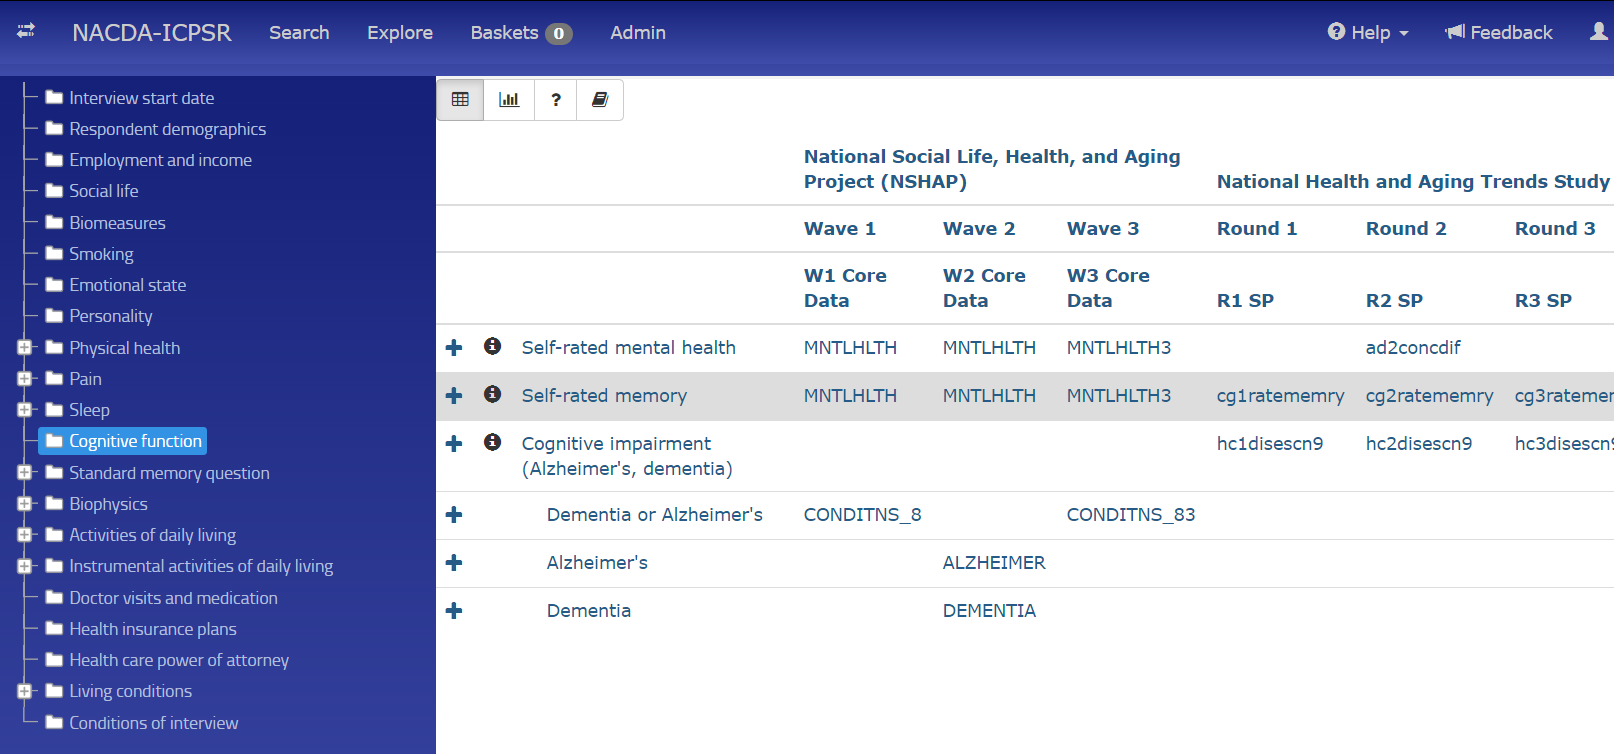 screenshot of the NACDA-ICPSR Colectica portal - cross series cognitive comparisons explore page - featuring cognitive function variables